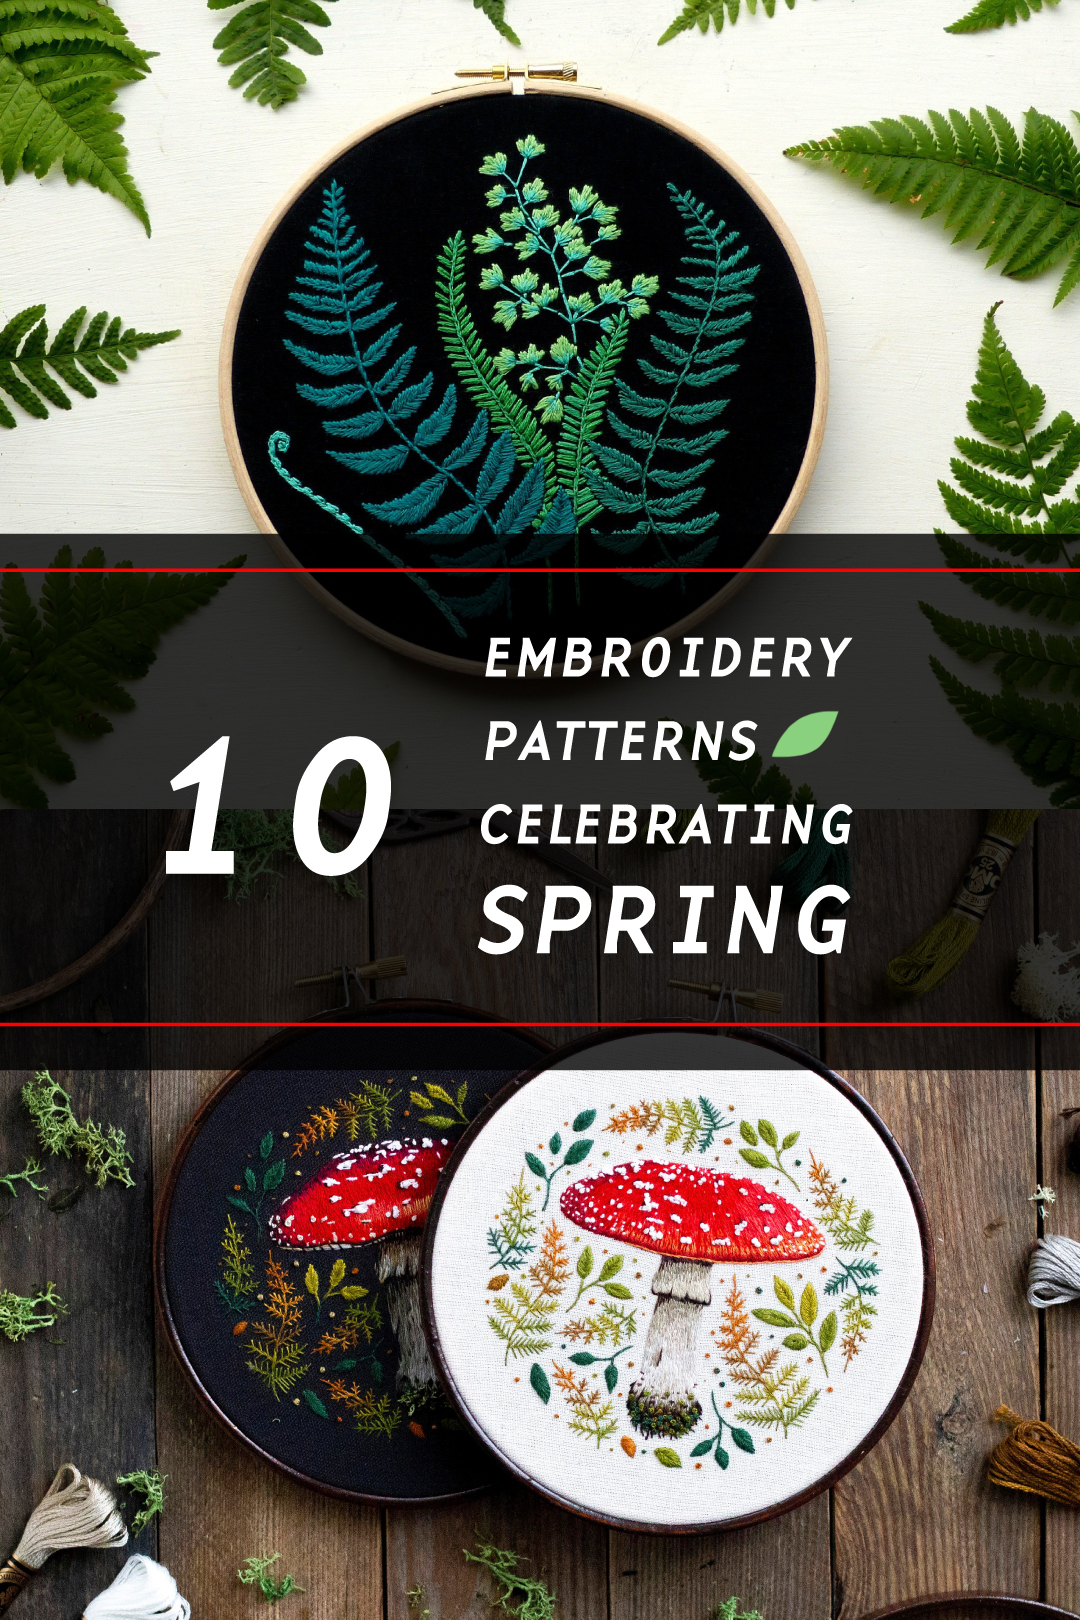 Hand embroidery patterns - perfect for spring crafts